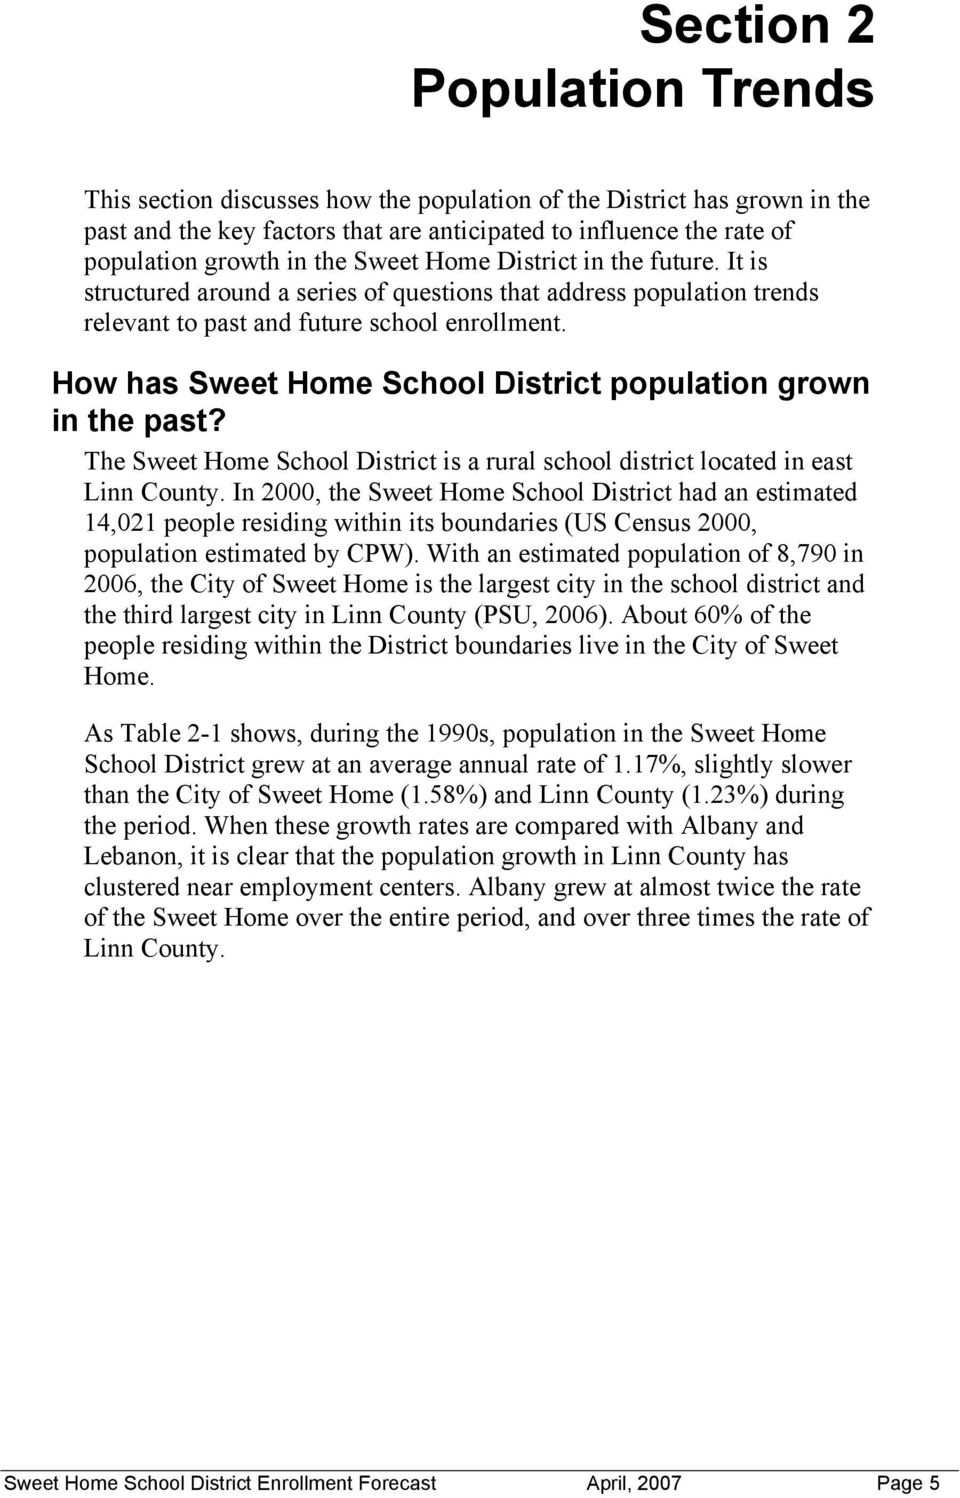 How has Sweet Home School District population grown in the past? The Sweet Home School District is a rural school district located in east Linn County.